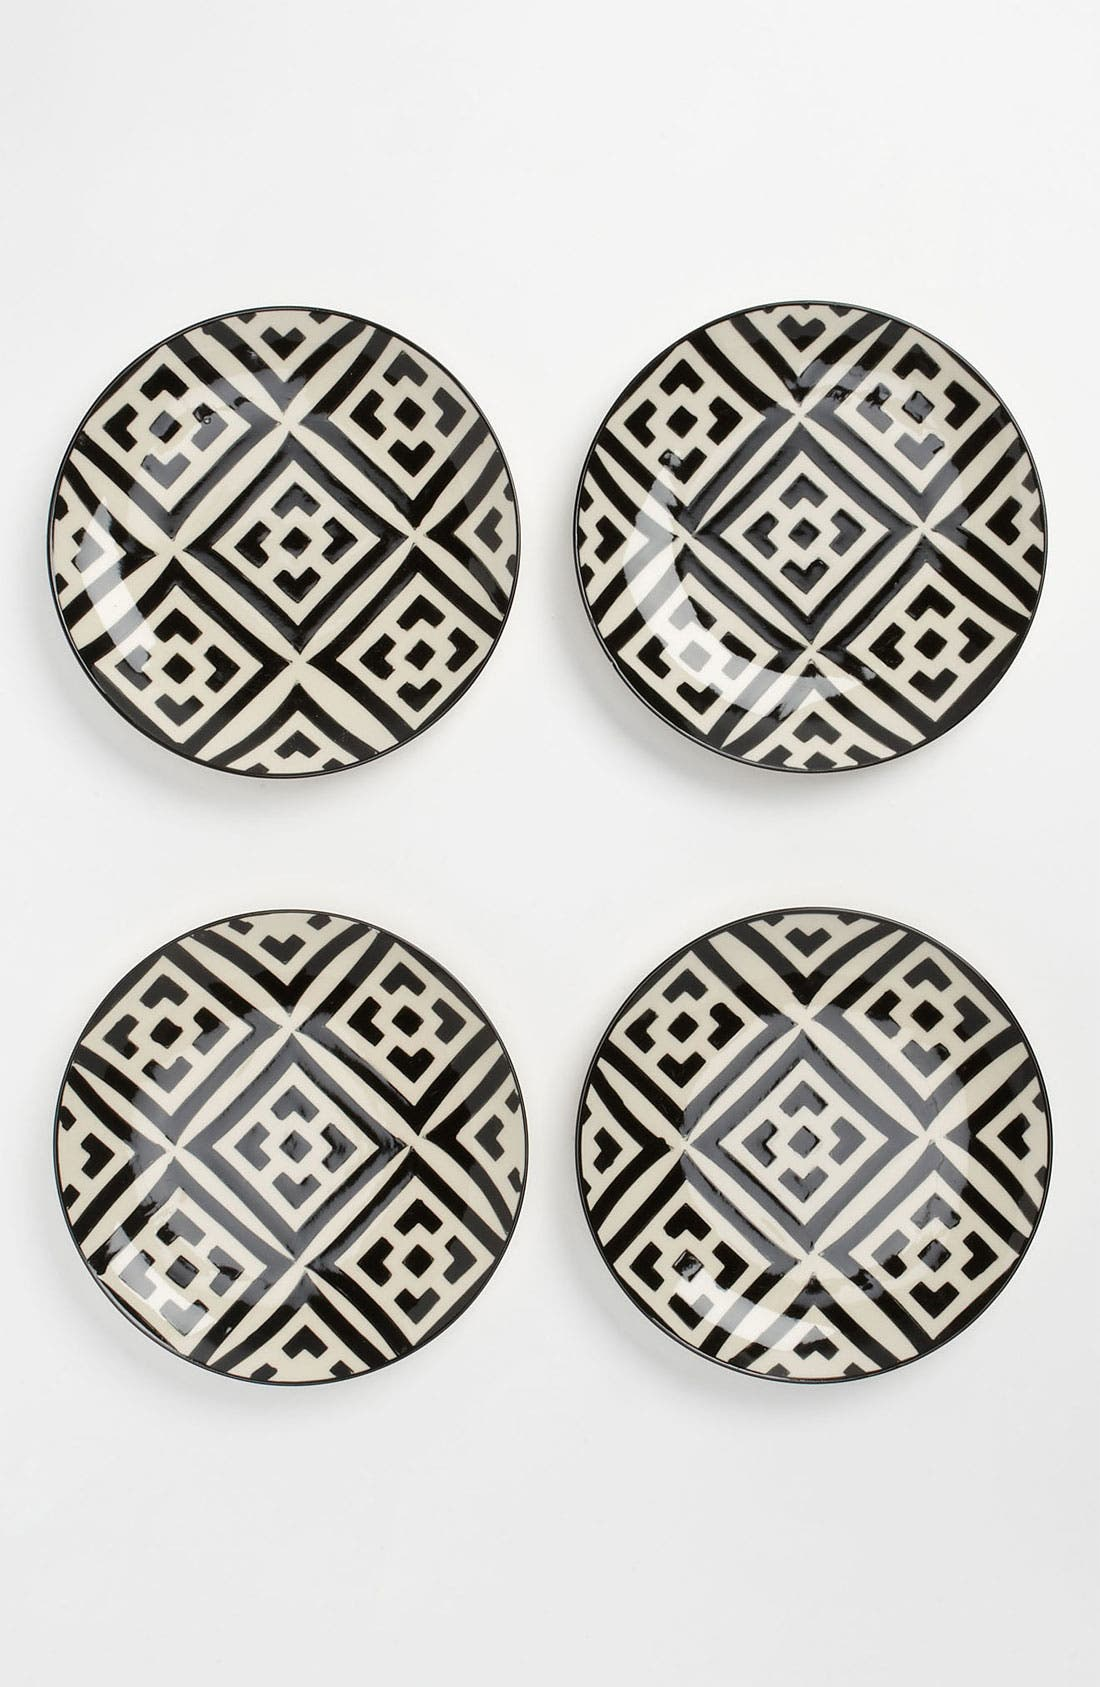 Main Image - Black & White Dessert Plates (Set of 4)